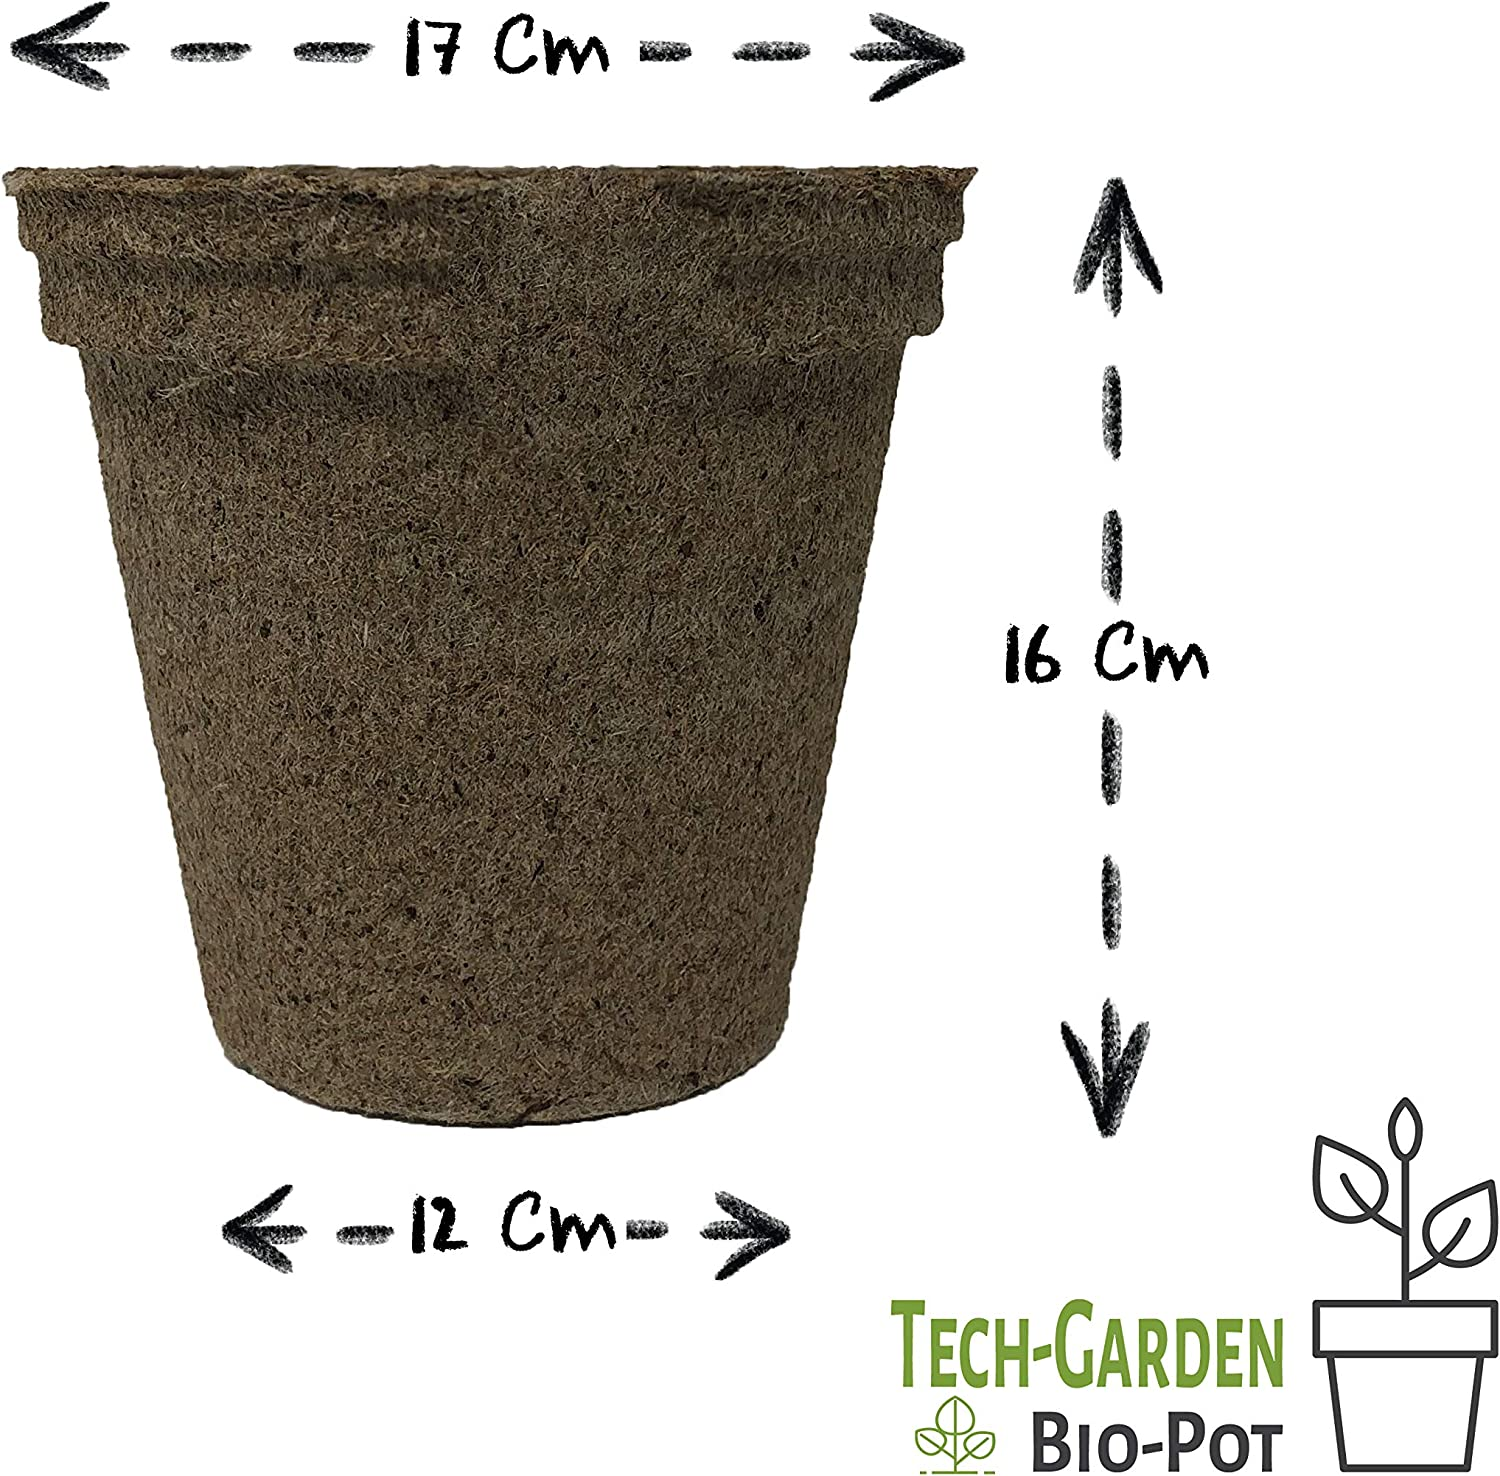 17 cm Jumbo Biodegradable Biopot Plant Pots Eco Friendly /& Compostable Round Seeding Germinating Plastic Free Peat Growing Sturdy Growing Pot with Drainage Holes Tech-Garden 6 Pack of